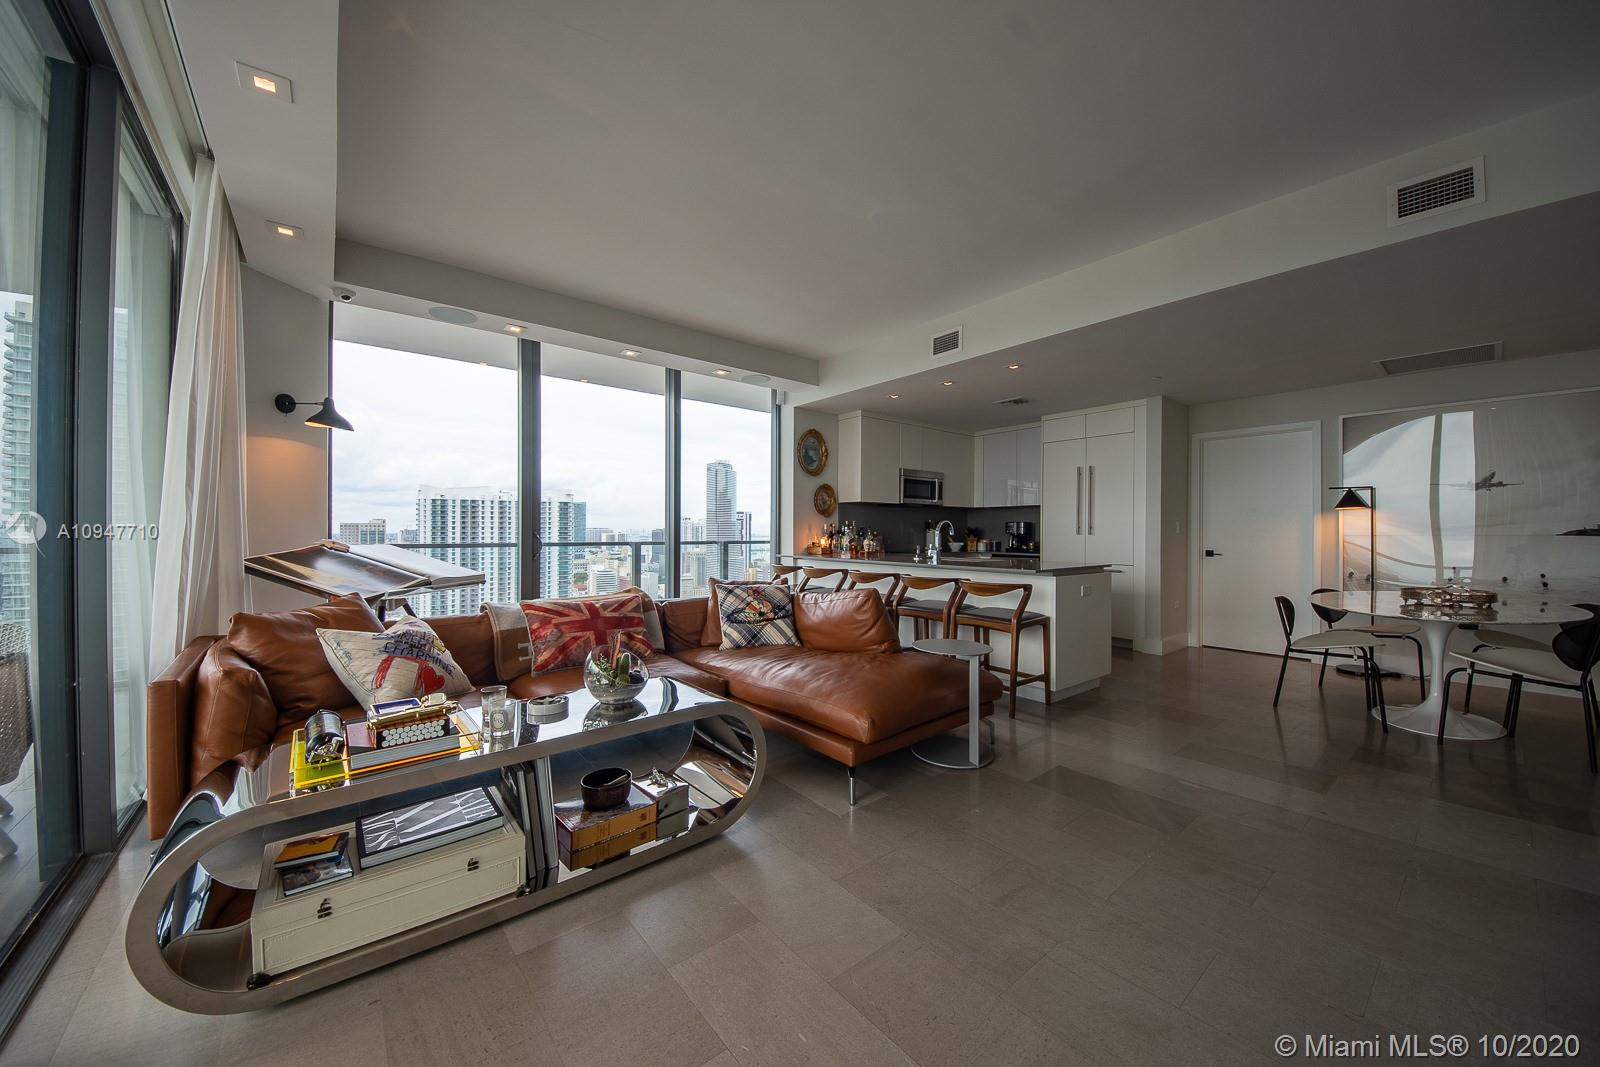 88 SW 7th St # 2912, Miami, Florida 33130, 3 Bedrooms Bedrooms, ,4 BathroomsBathrooms,Residential,For Sale,88 SW 7th St # 2912,A10947710